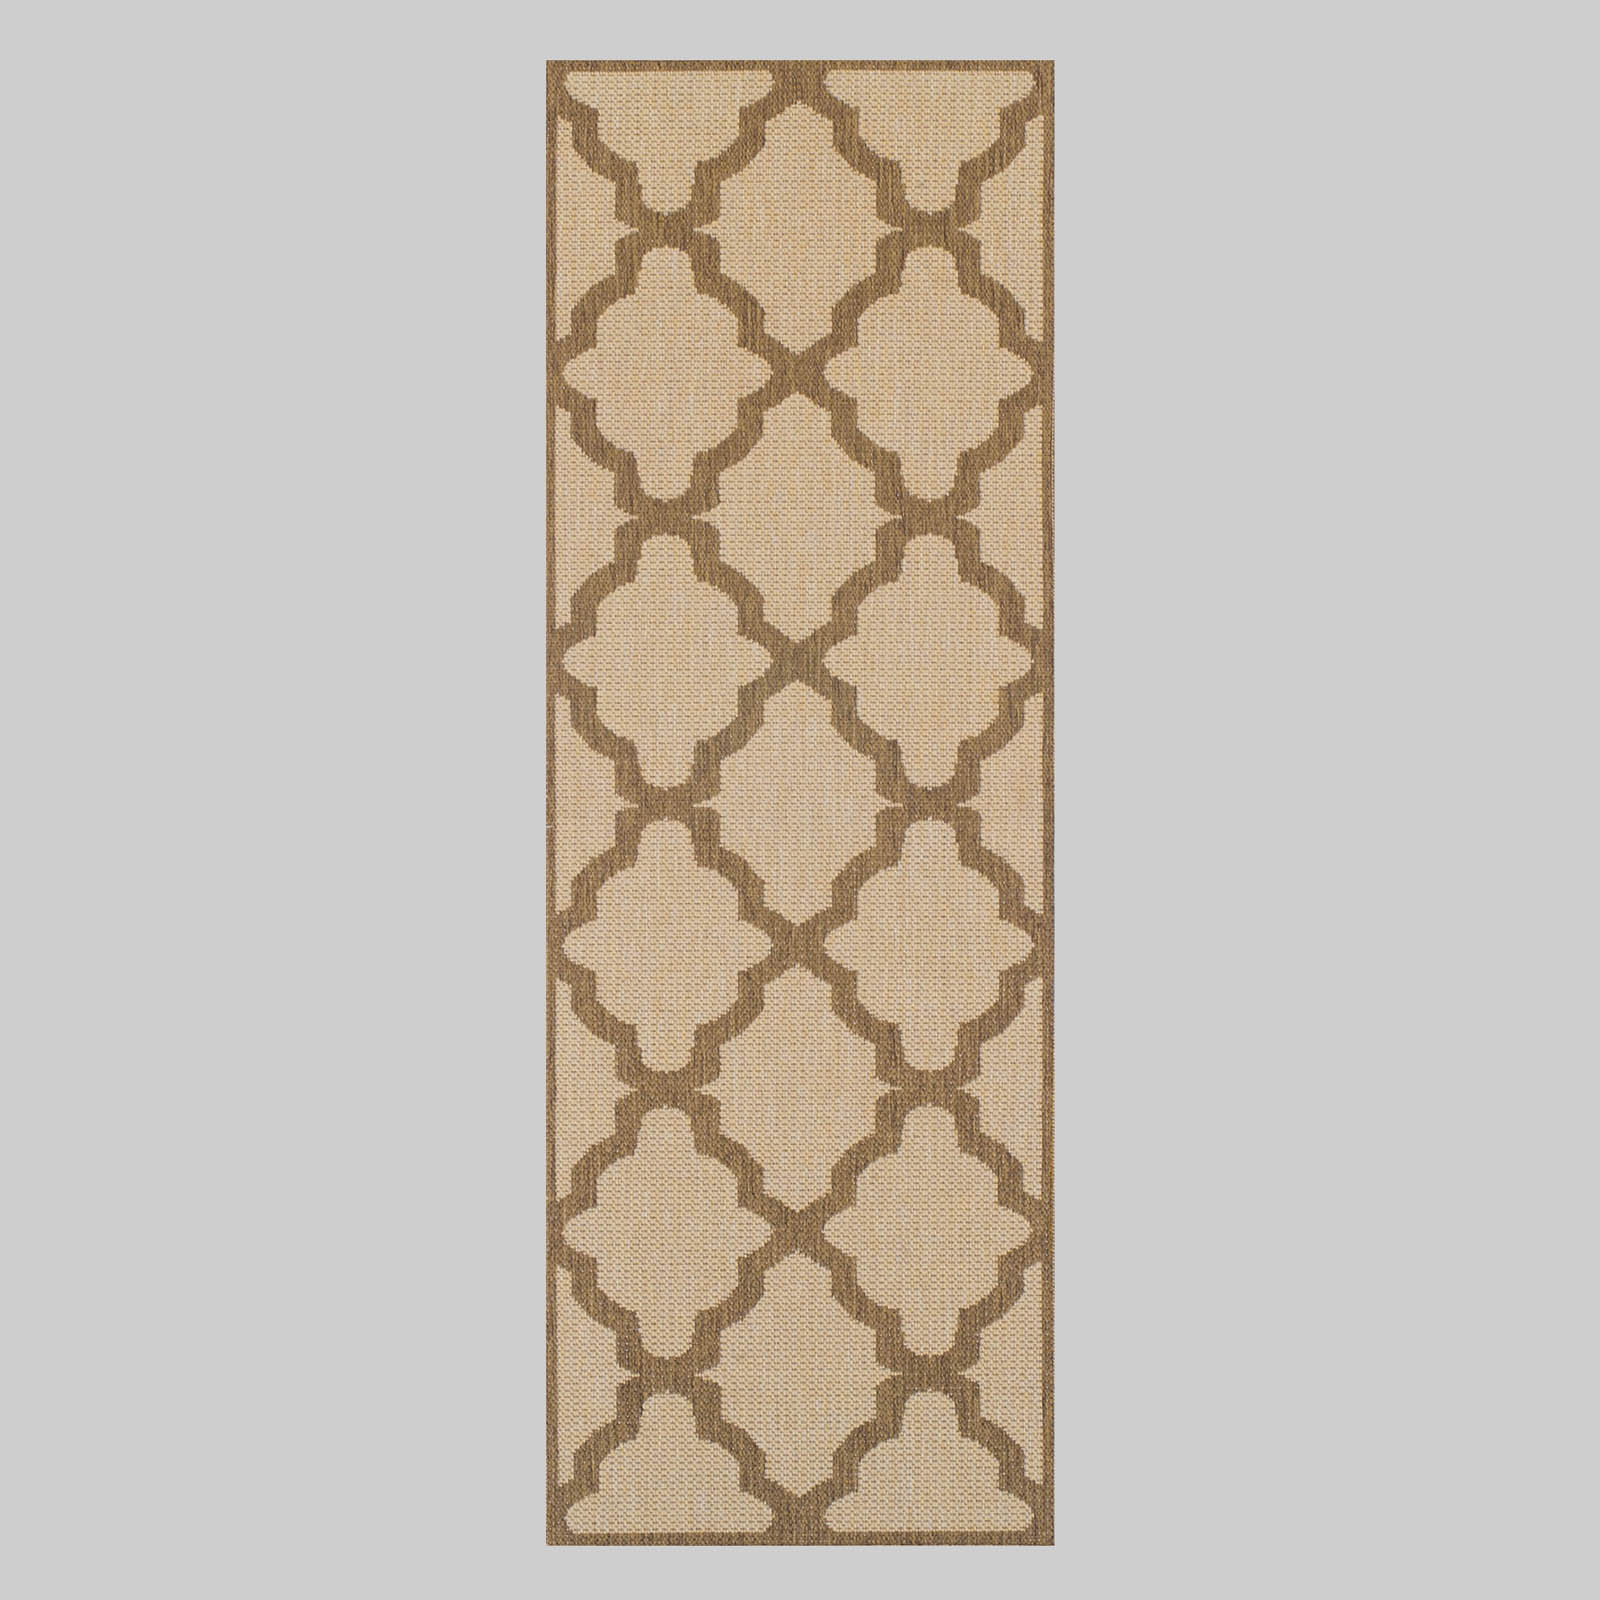 Trellis Runners in Beige